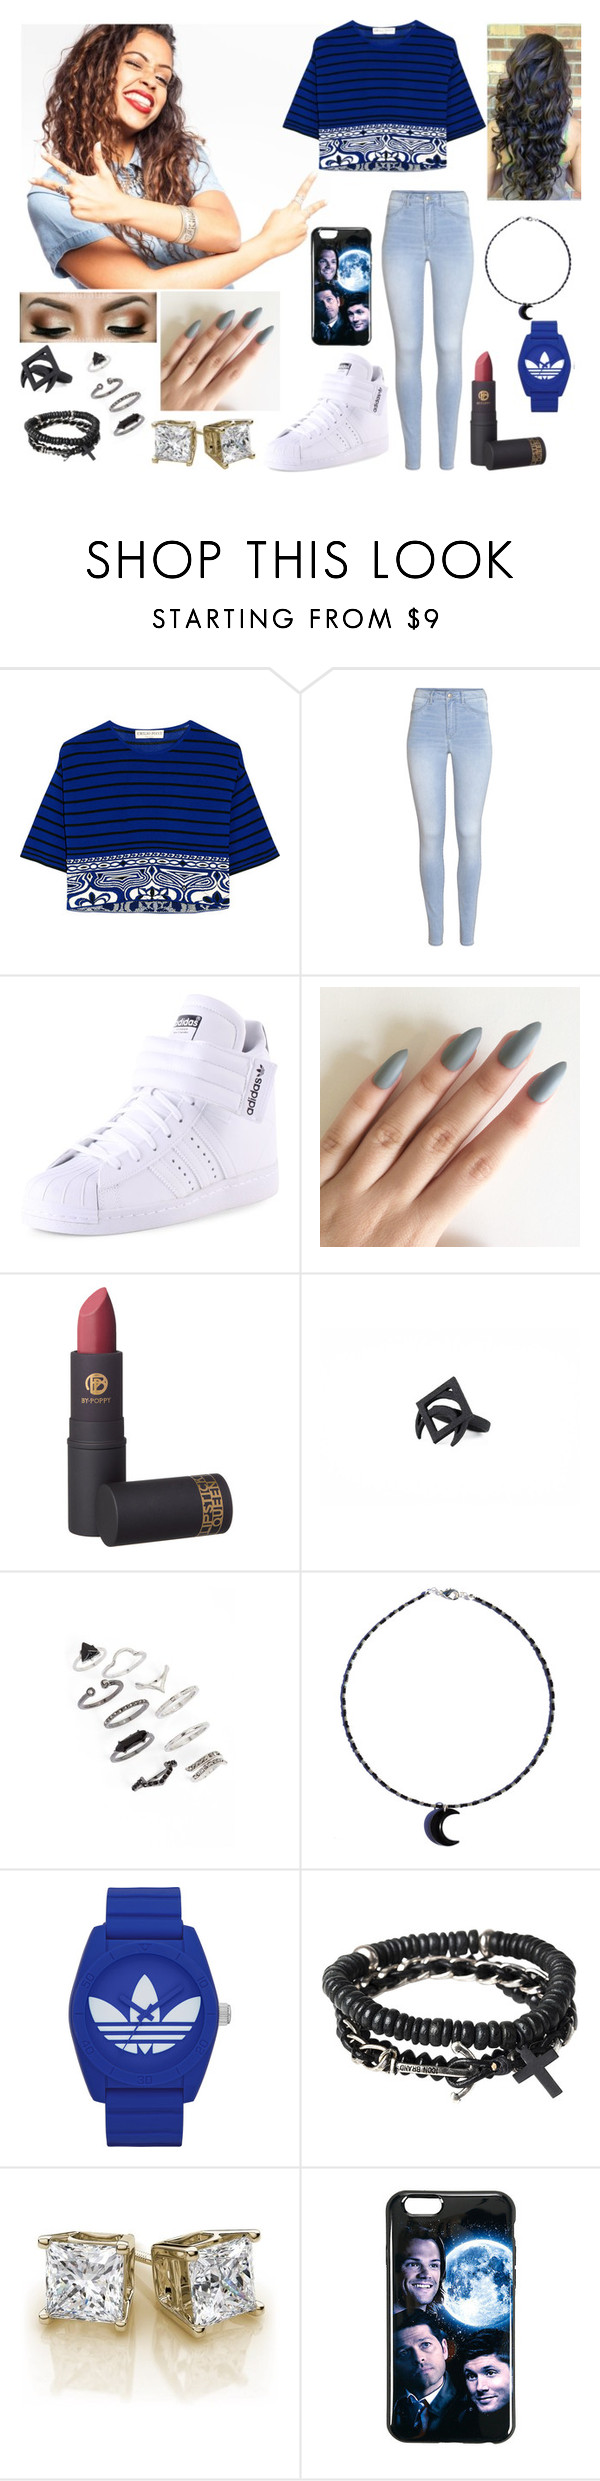 """""""Meeting Liza Koshy"""" by originalmrsmalfoy1 ❤ liked on Polyvore featuring Emilio Pucci, H&M, adidas, Lipstick Queen, Topshop and Icon"""